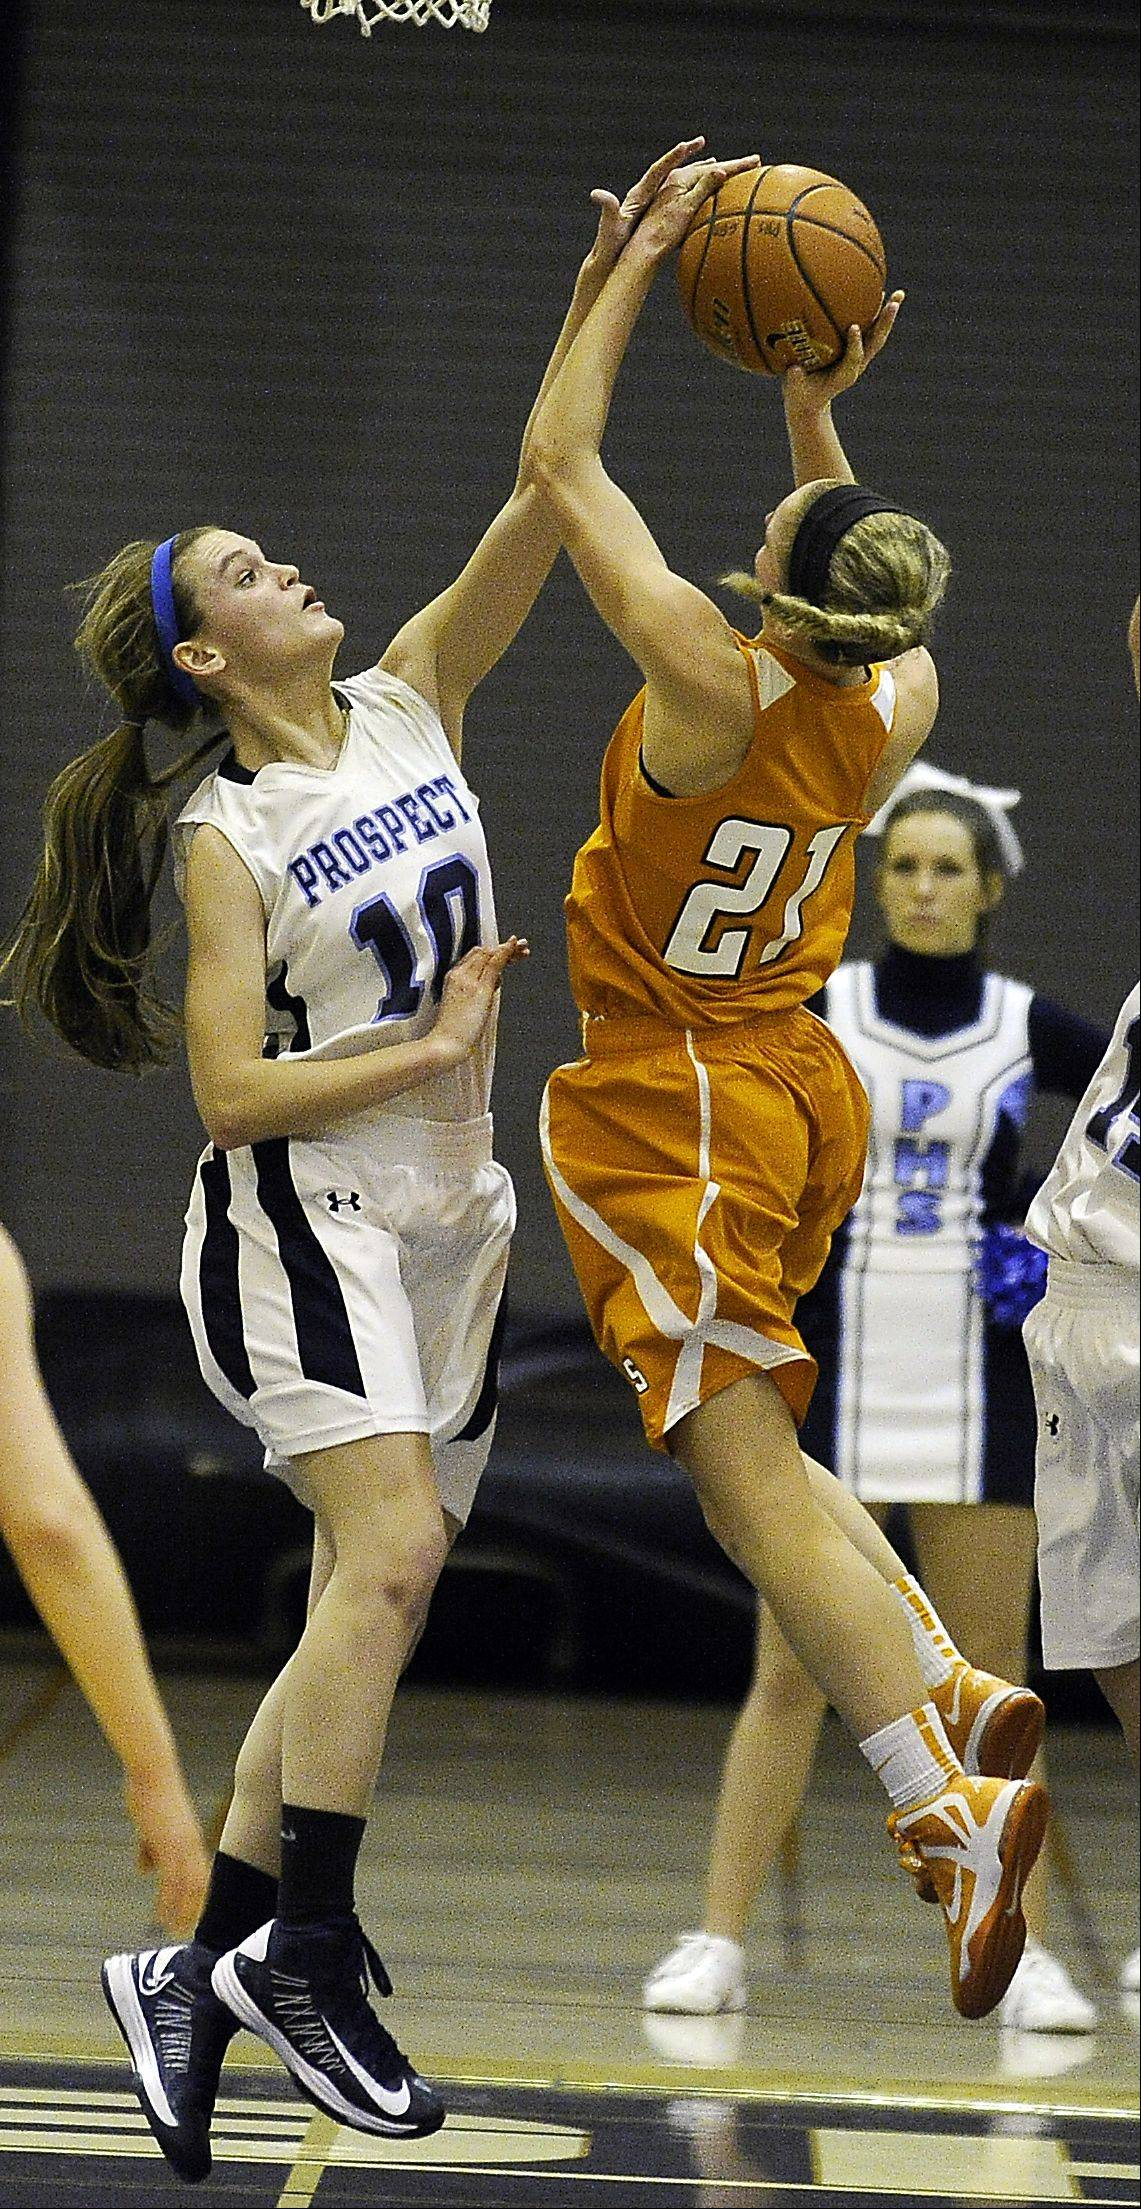 Prospect's Taylor Will blocks the shot taken by Hersey's Meg Cerniglia during Friday's game in Mount Prospect.